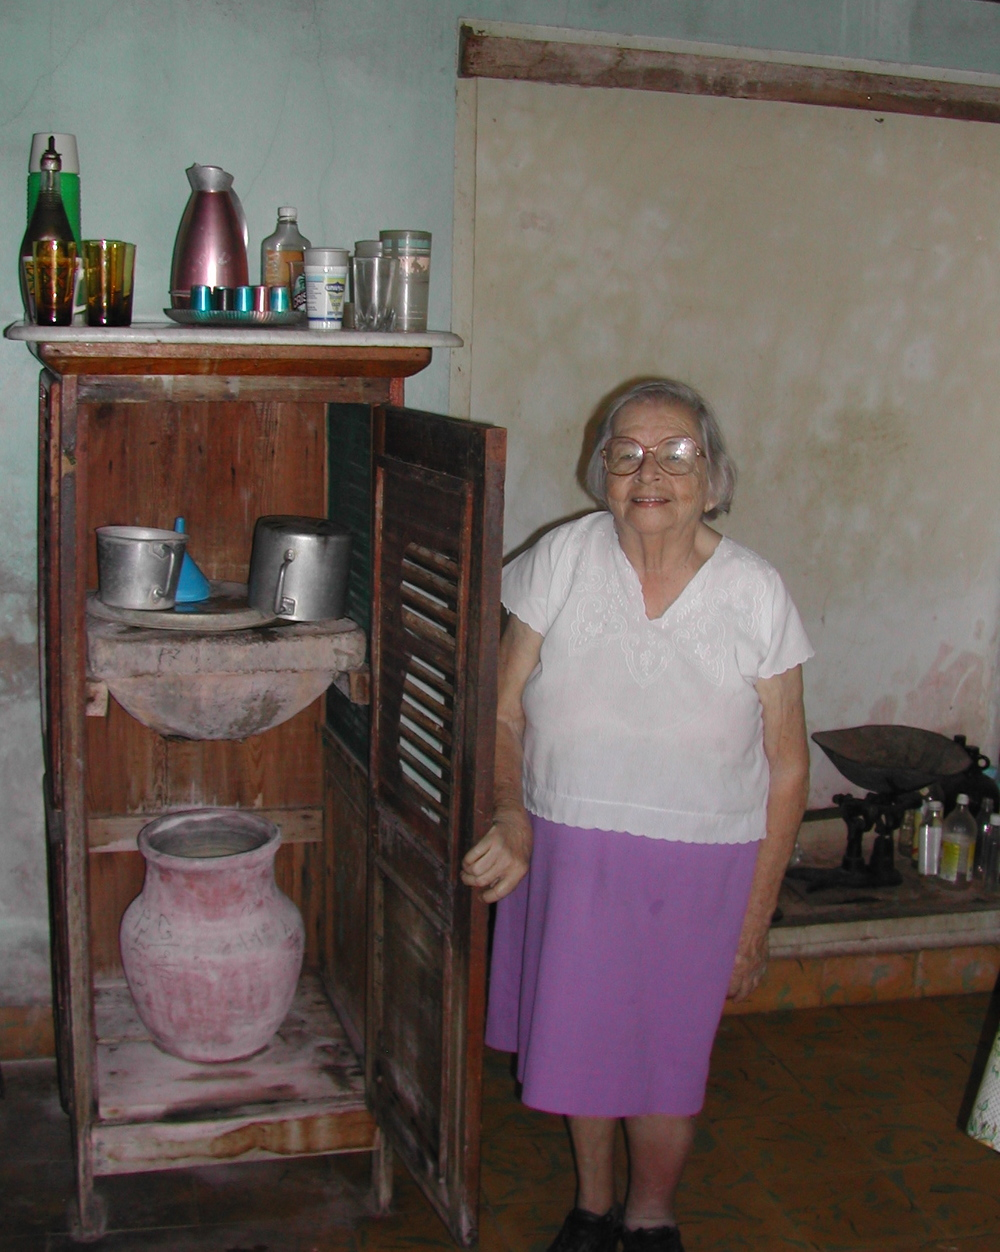 Invited inside in Cuba 2, 2003